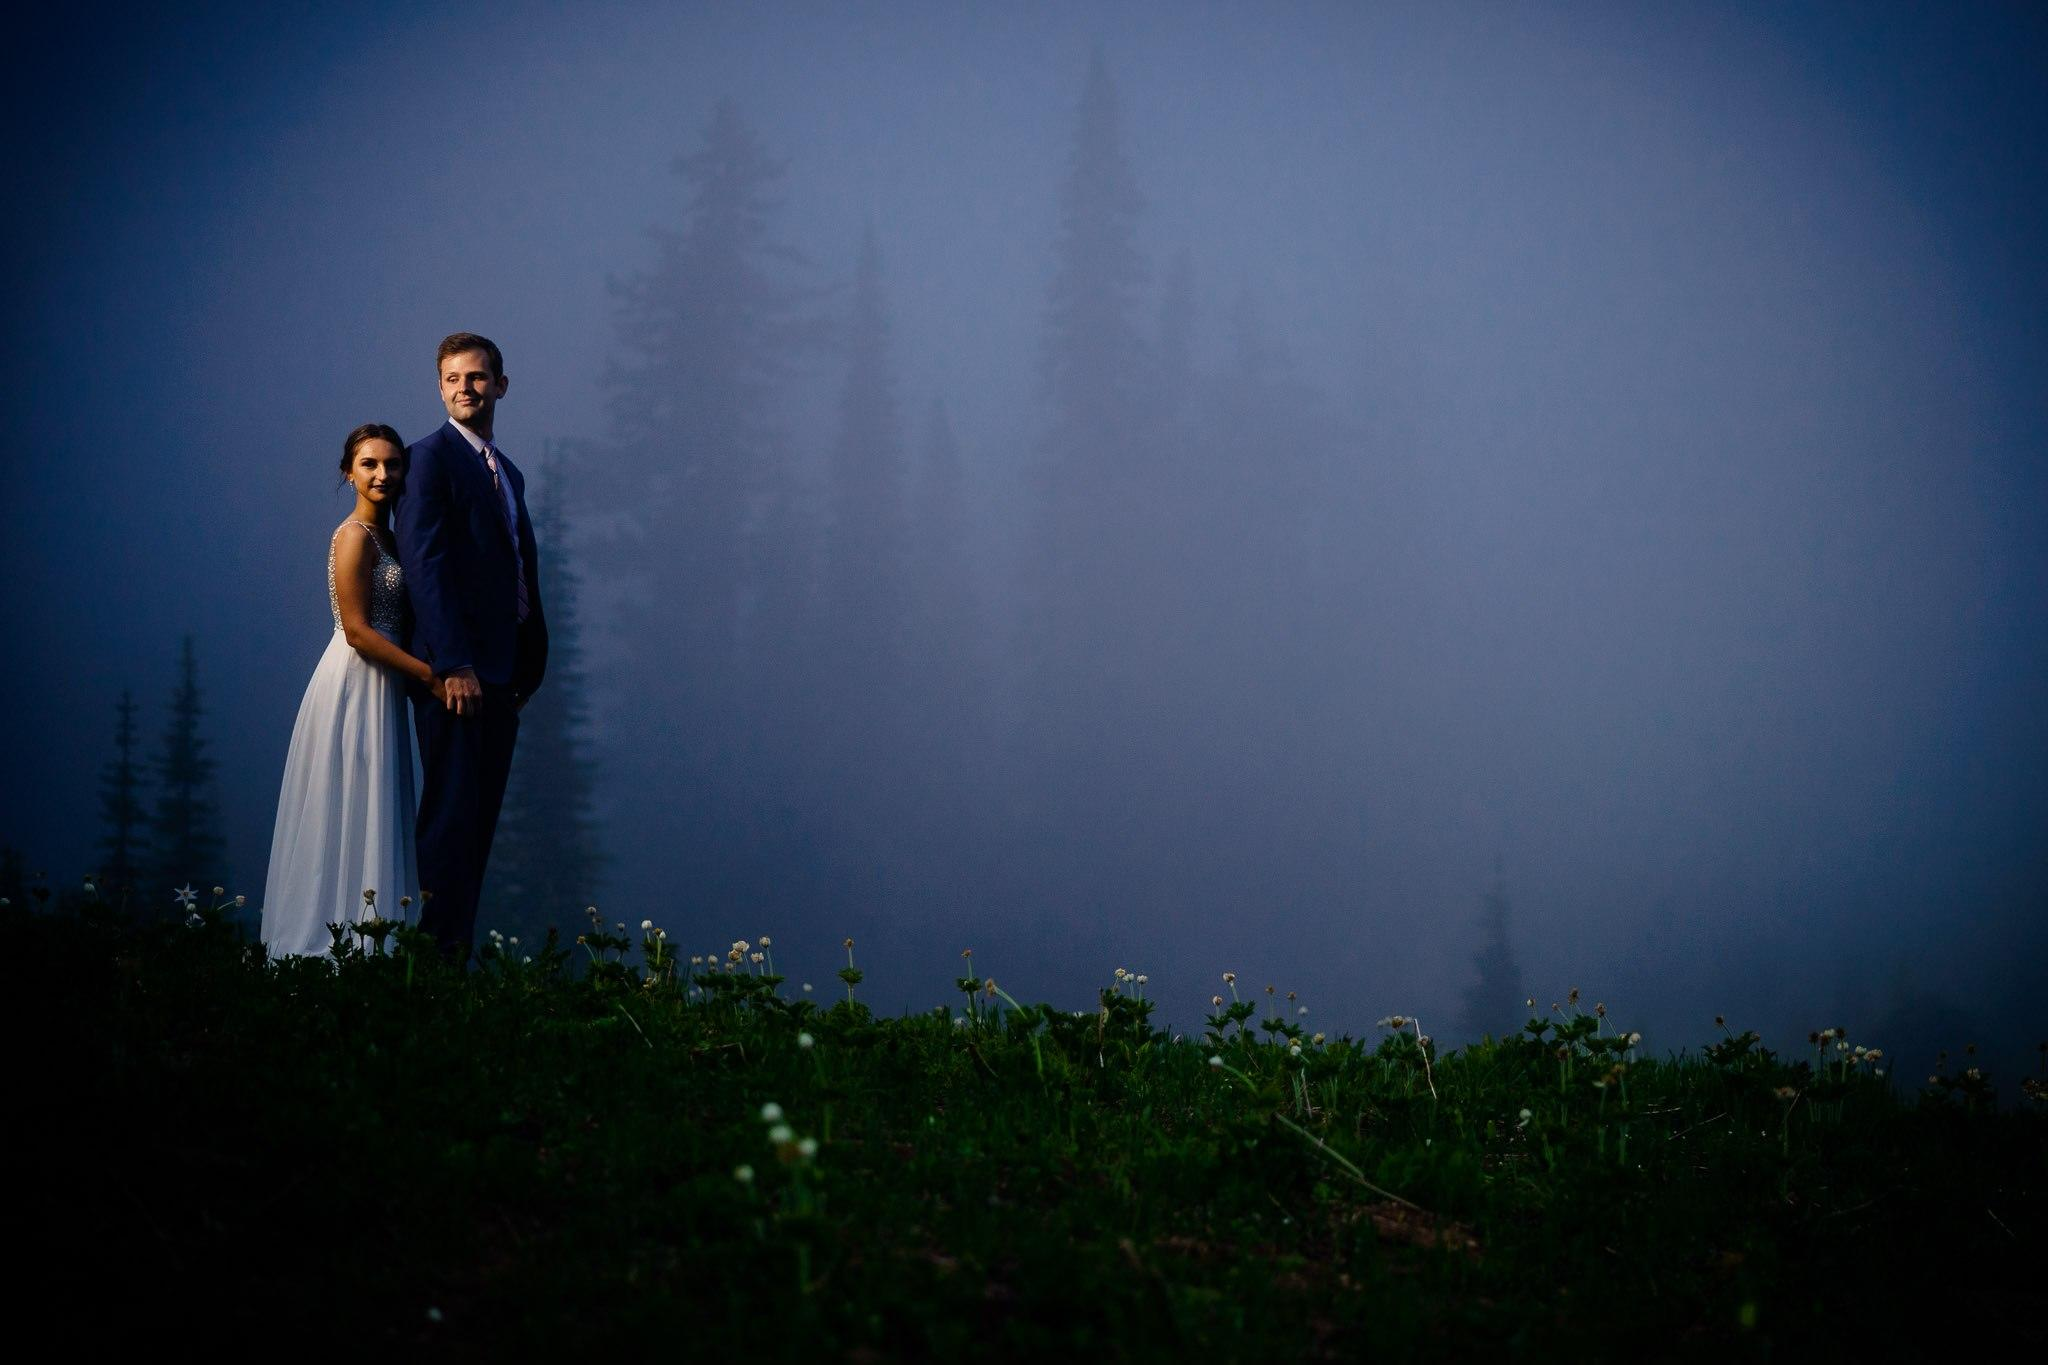 A foggy evening wedding shot with the couple standing on a hill. Edited by ShootDotEdit.